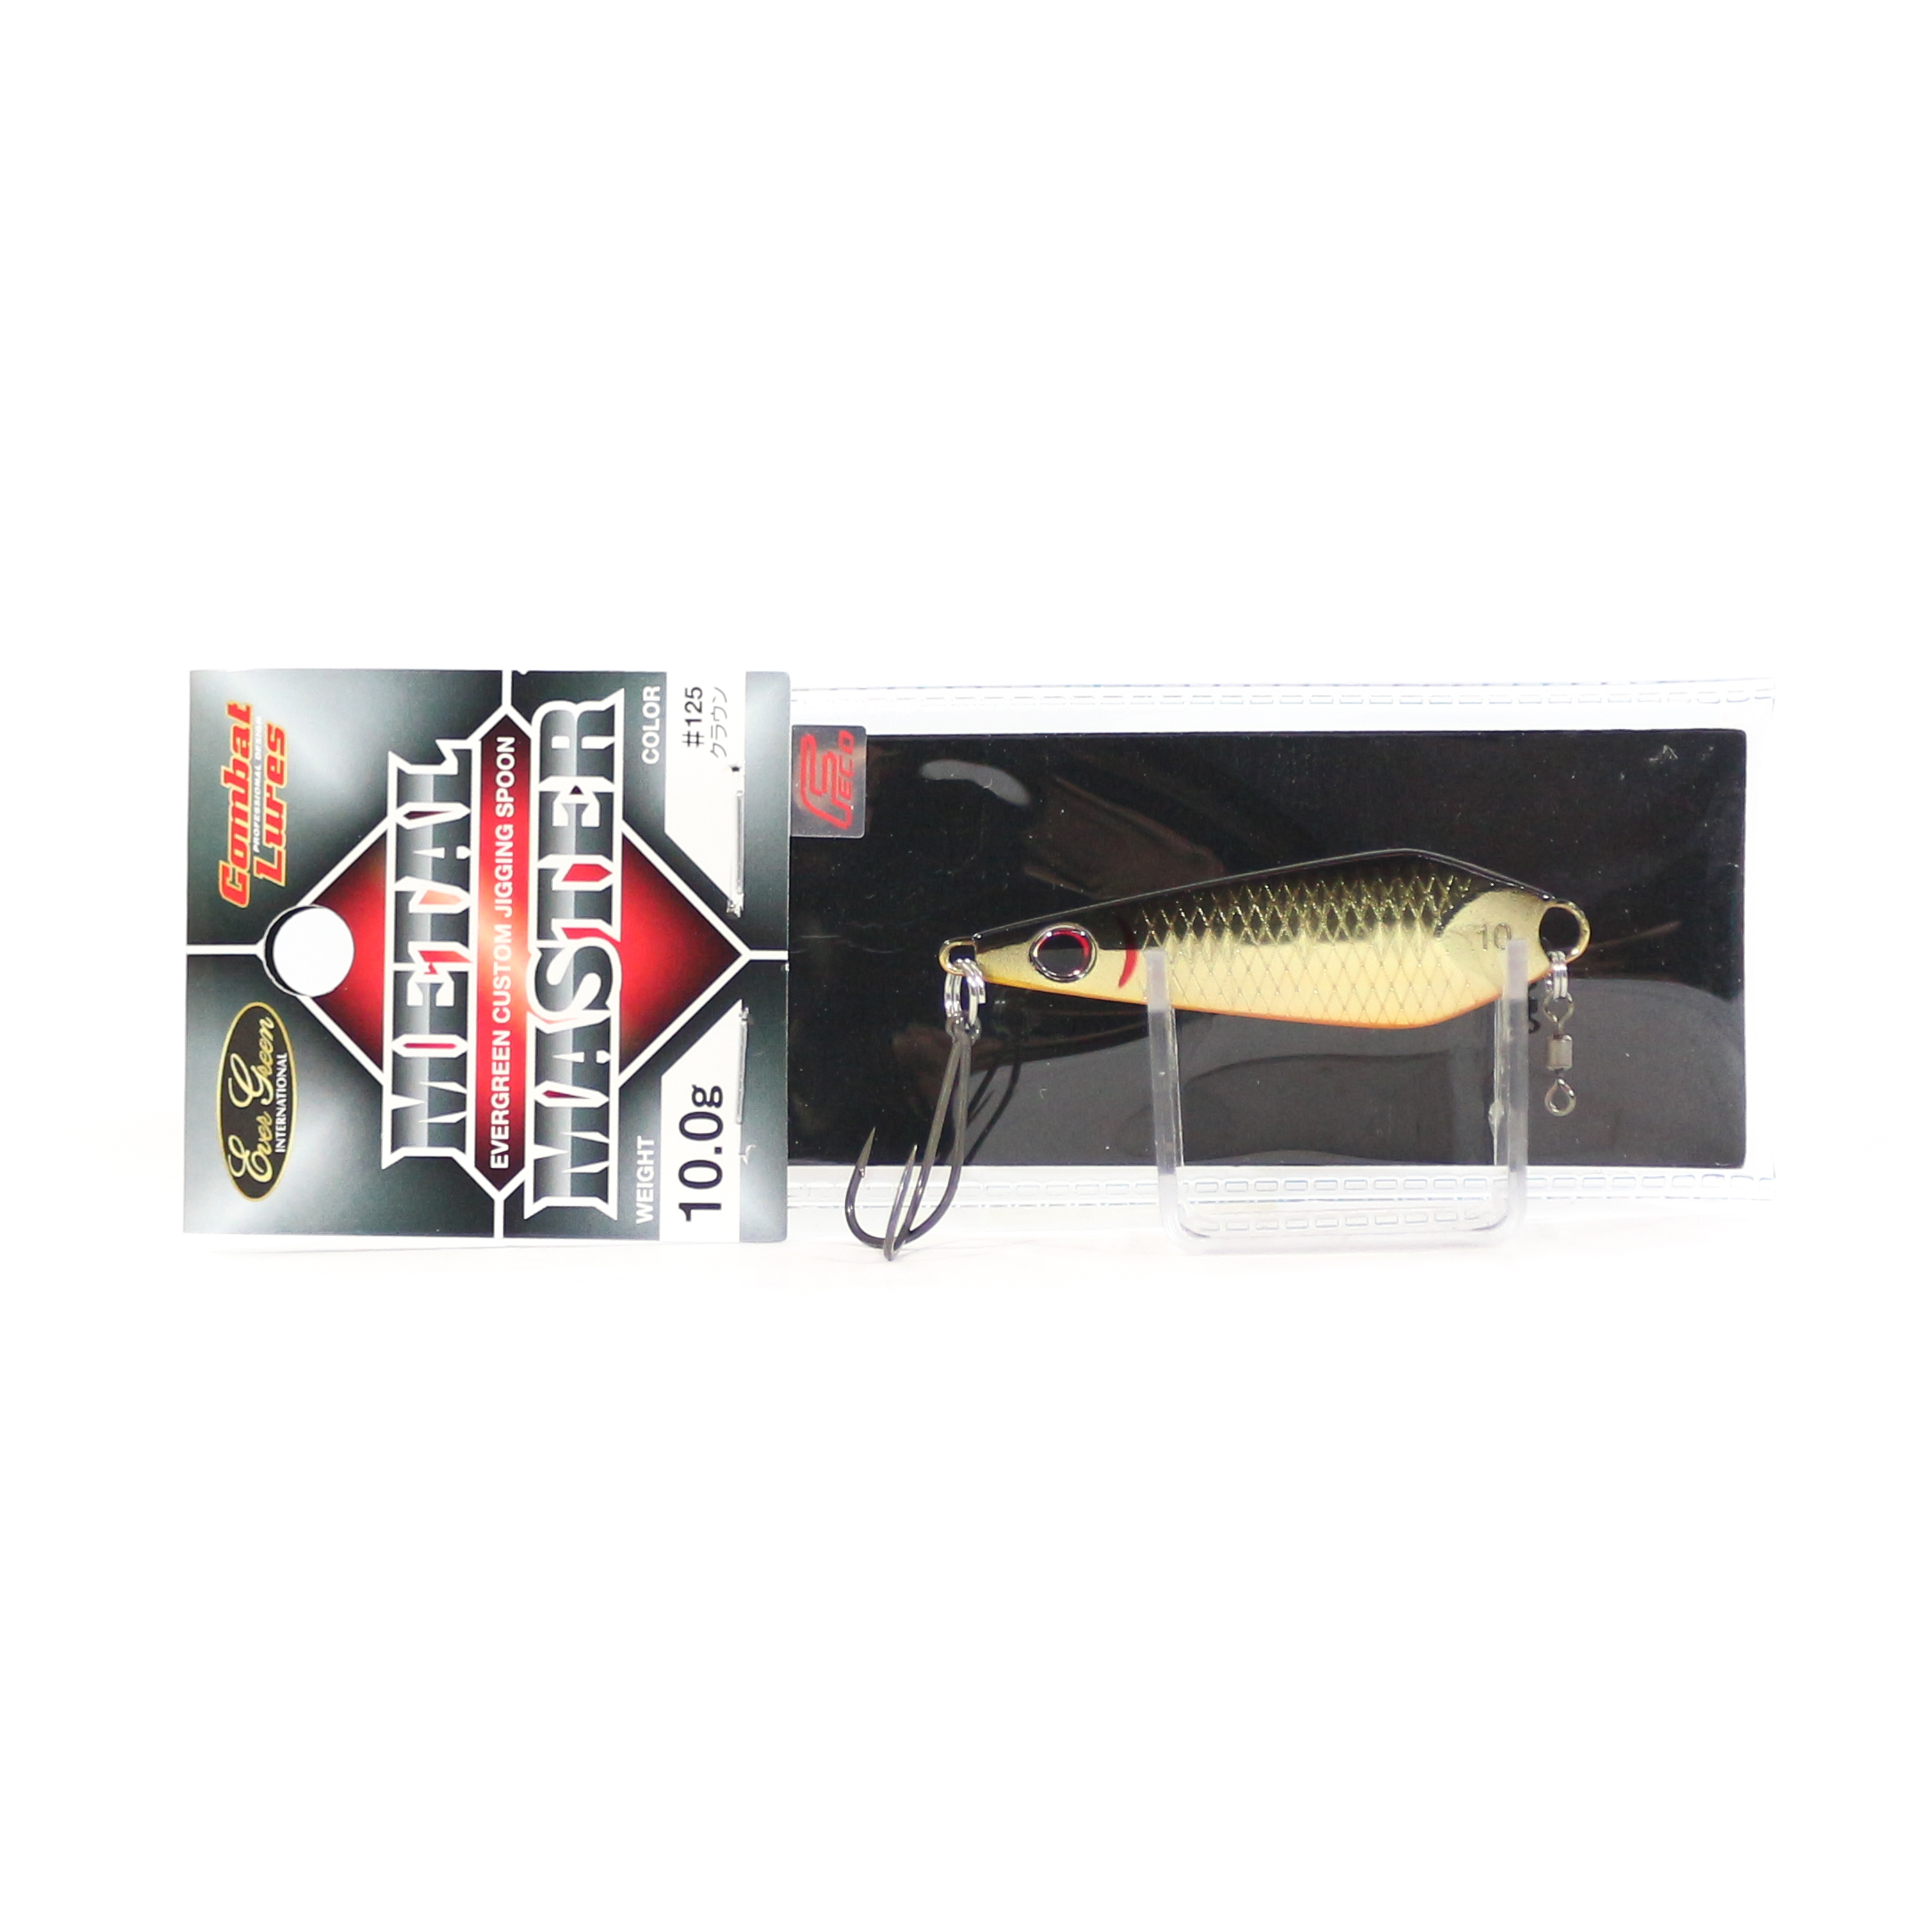 Evergreen Metal Master Custom Jigging Spoon 10 grams 25 (5966)